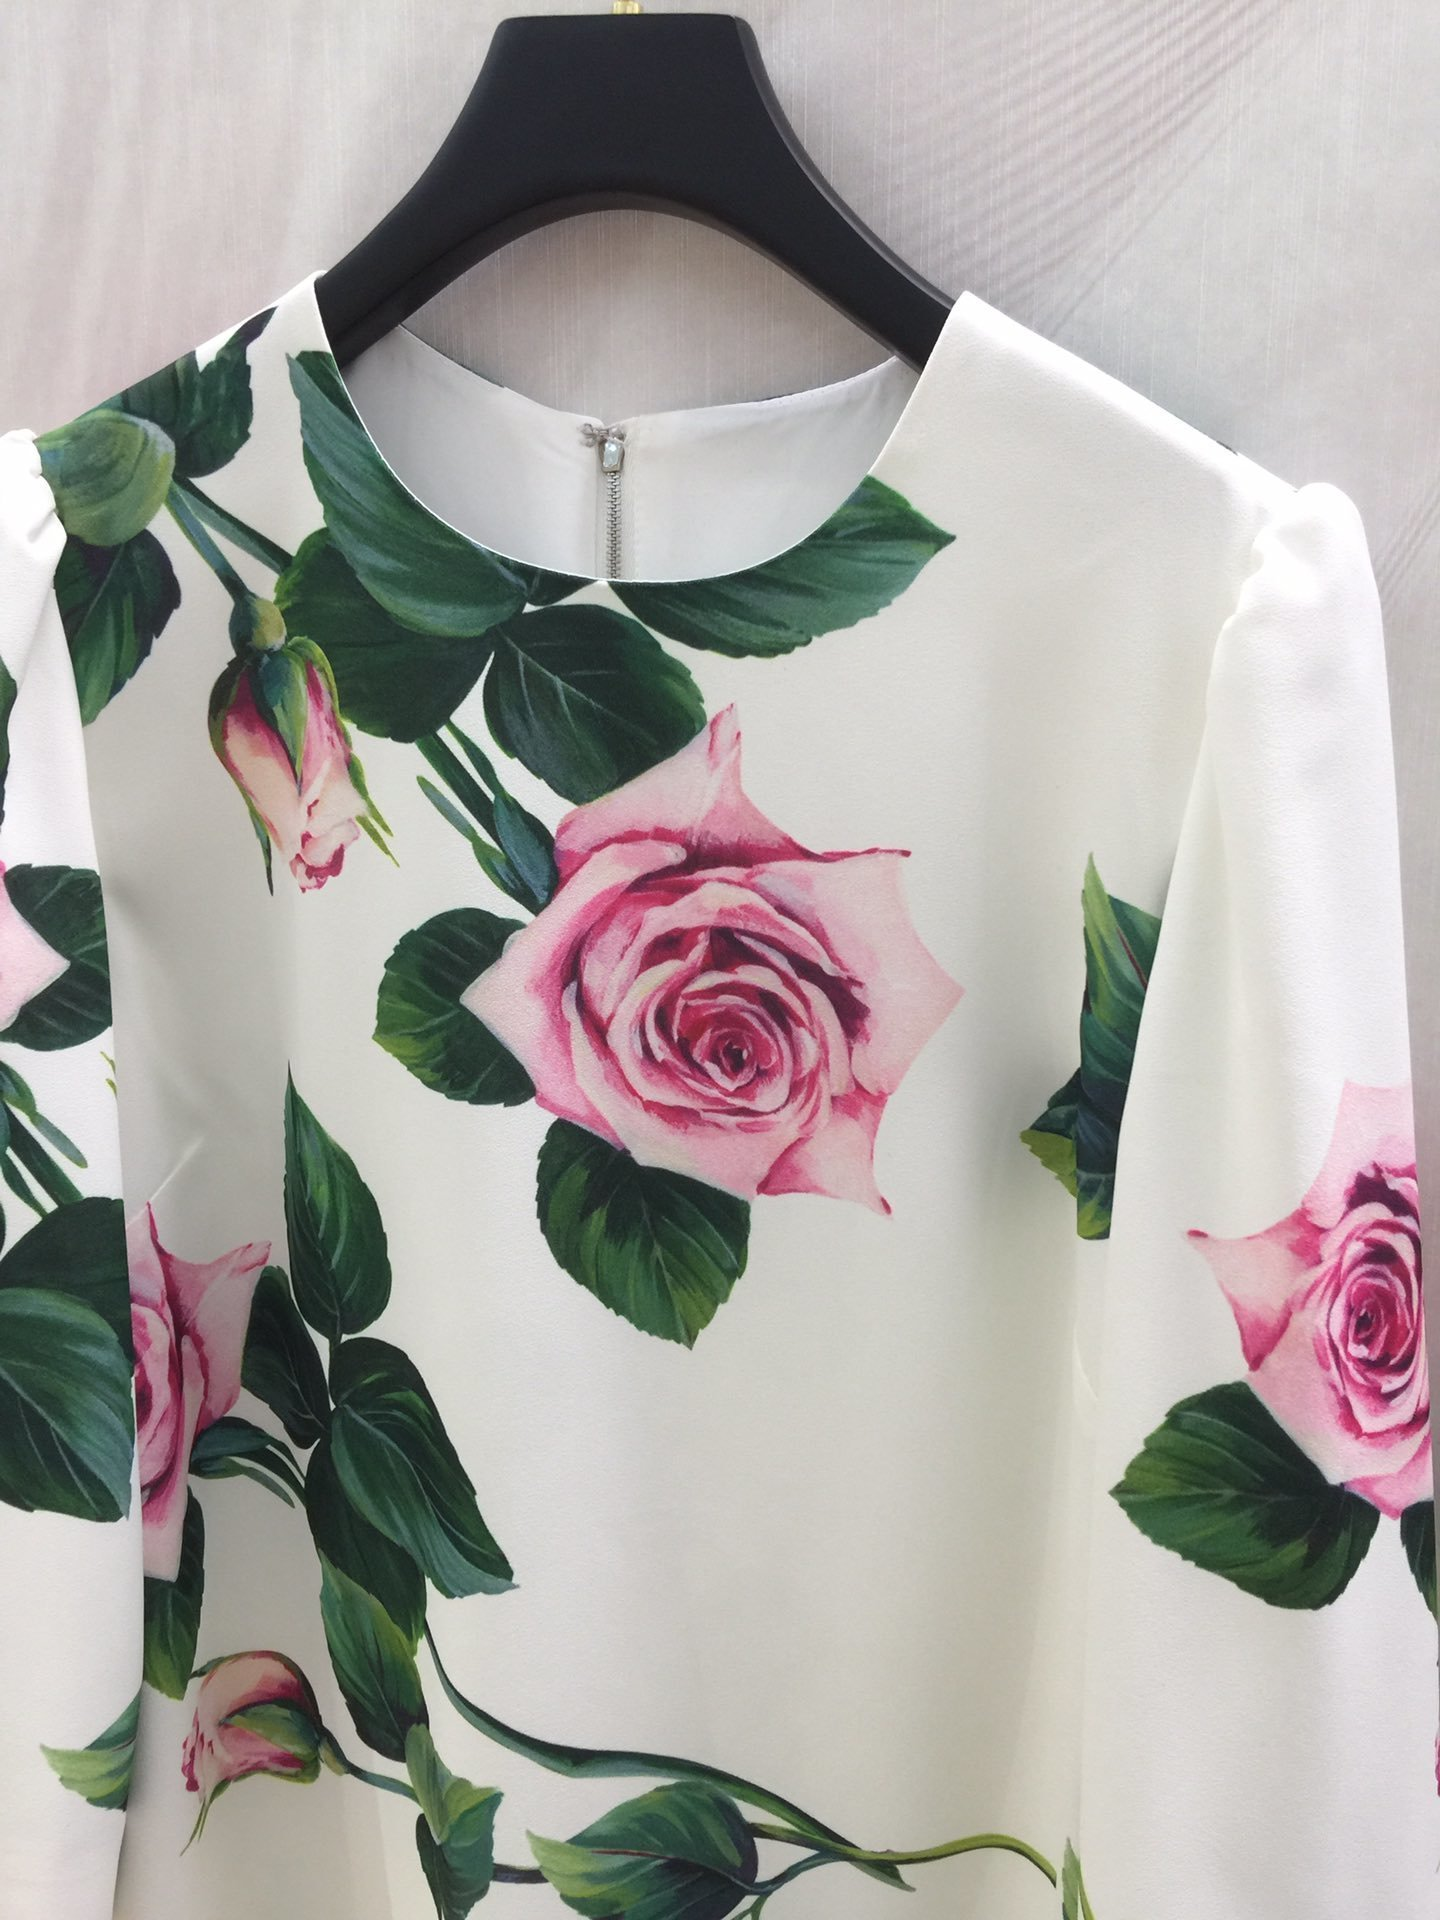 Image 5 - HH040  A new dress for early spring Welcome the coming spring.  flowerDresses   -